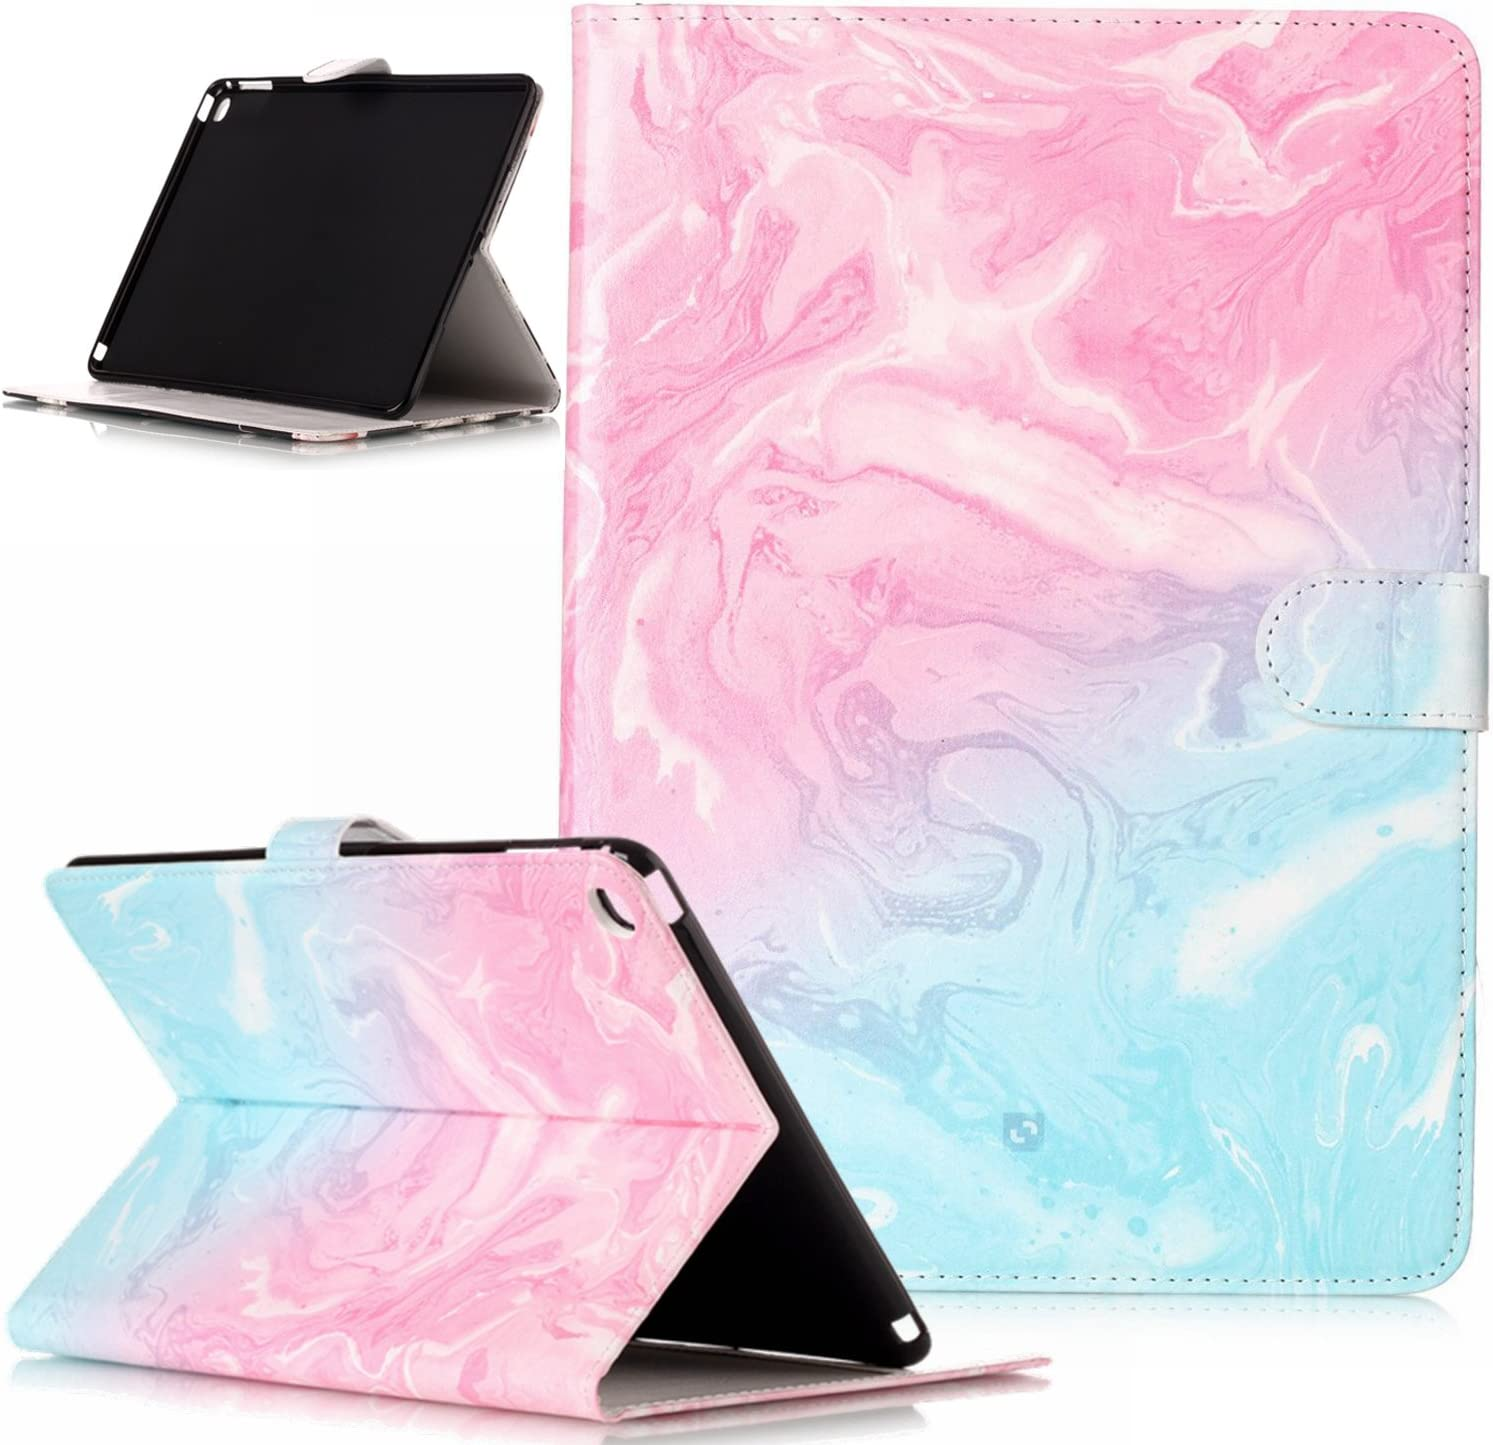 iPad Air 2 Case,ikasus Painted Marble PU Leather Fold Wallet Pouch Case Wallet Flip Cover Card Slots Stand Protective Case Cover for Apple iPad Air 2 ipad 6 Case Cover,Rose Gold Marble